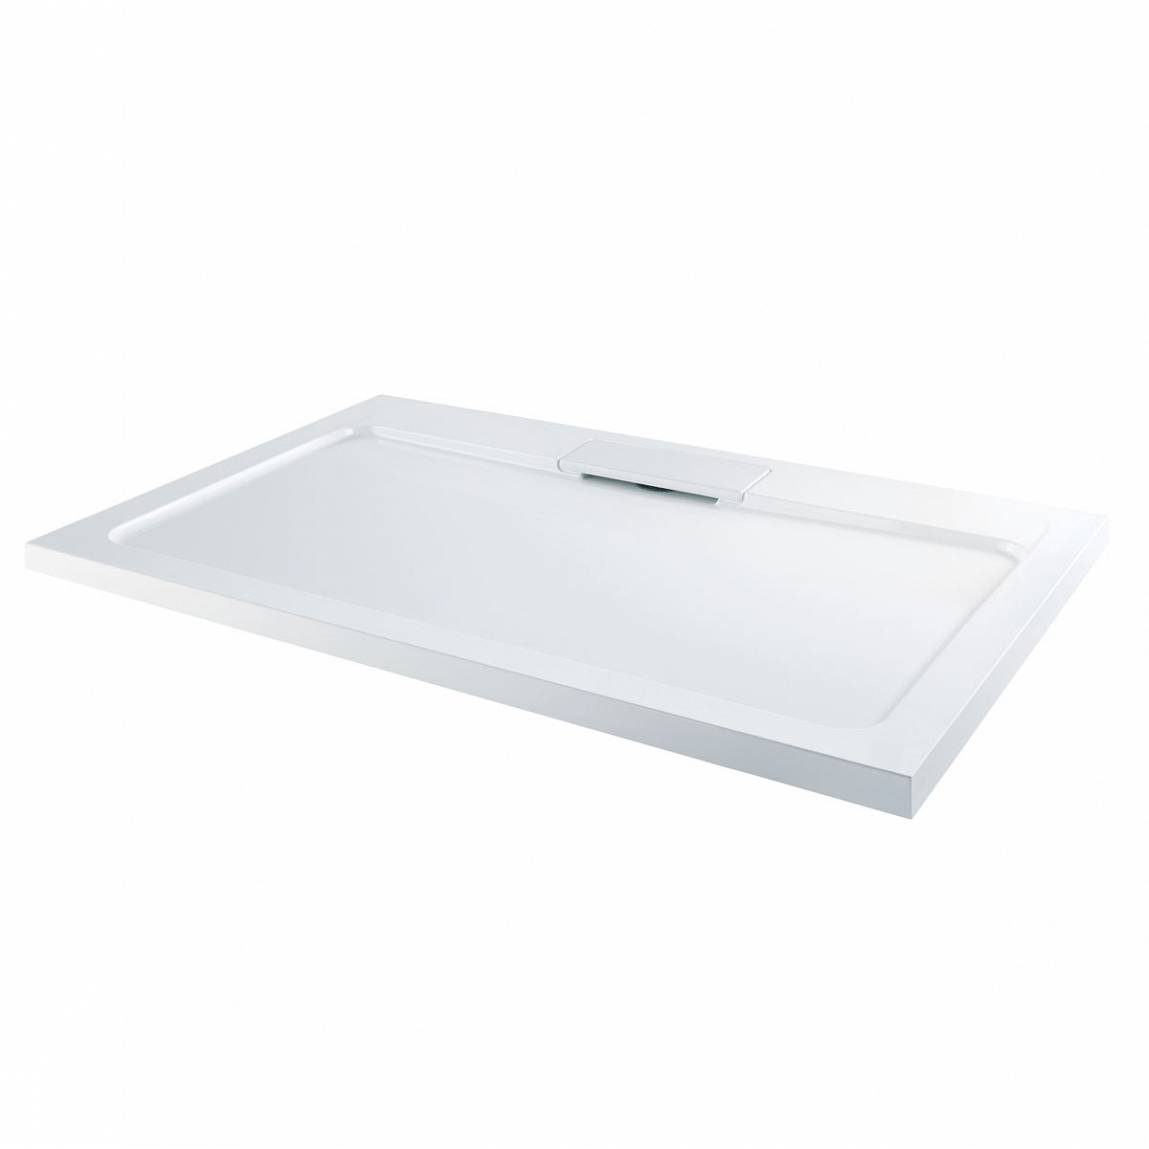 Image of Designer Rectangular Stone Shower Tray 1200 x 800